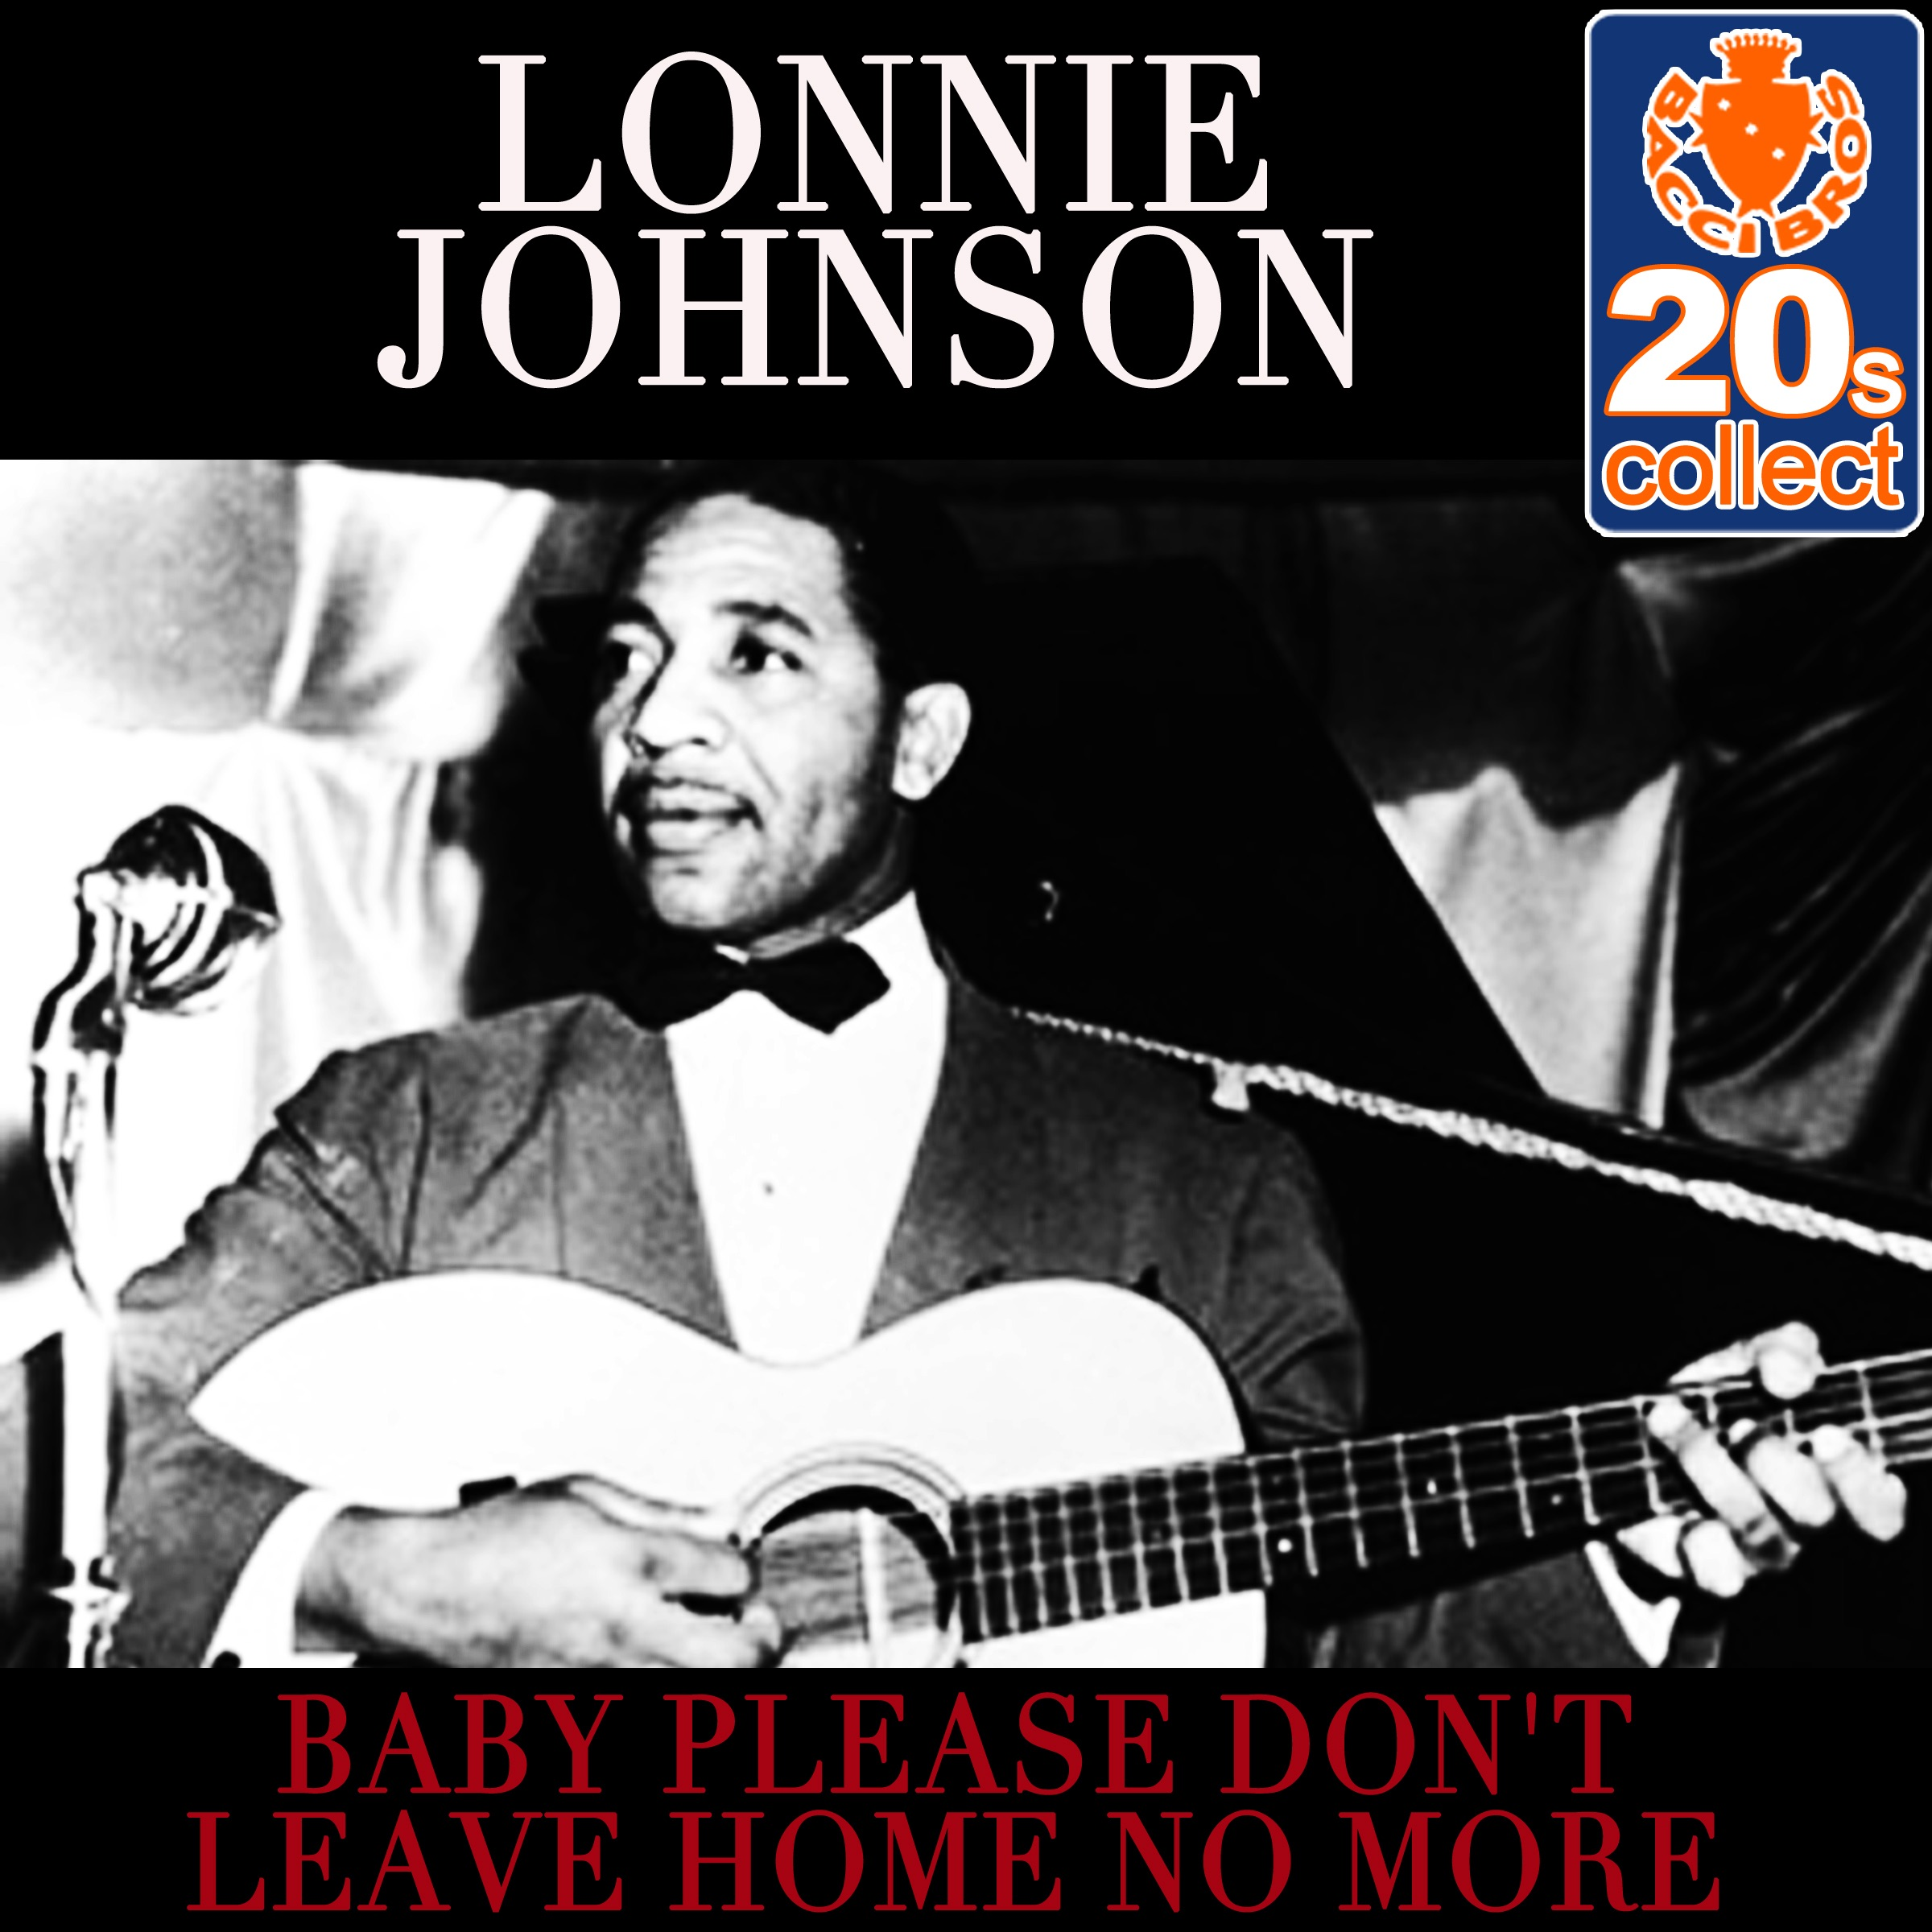 Baby Please Don't Leave Home No More (Remastered) - Single